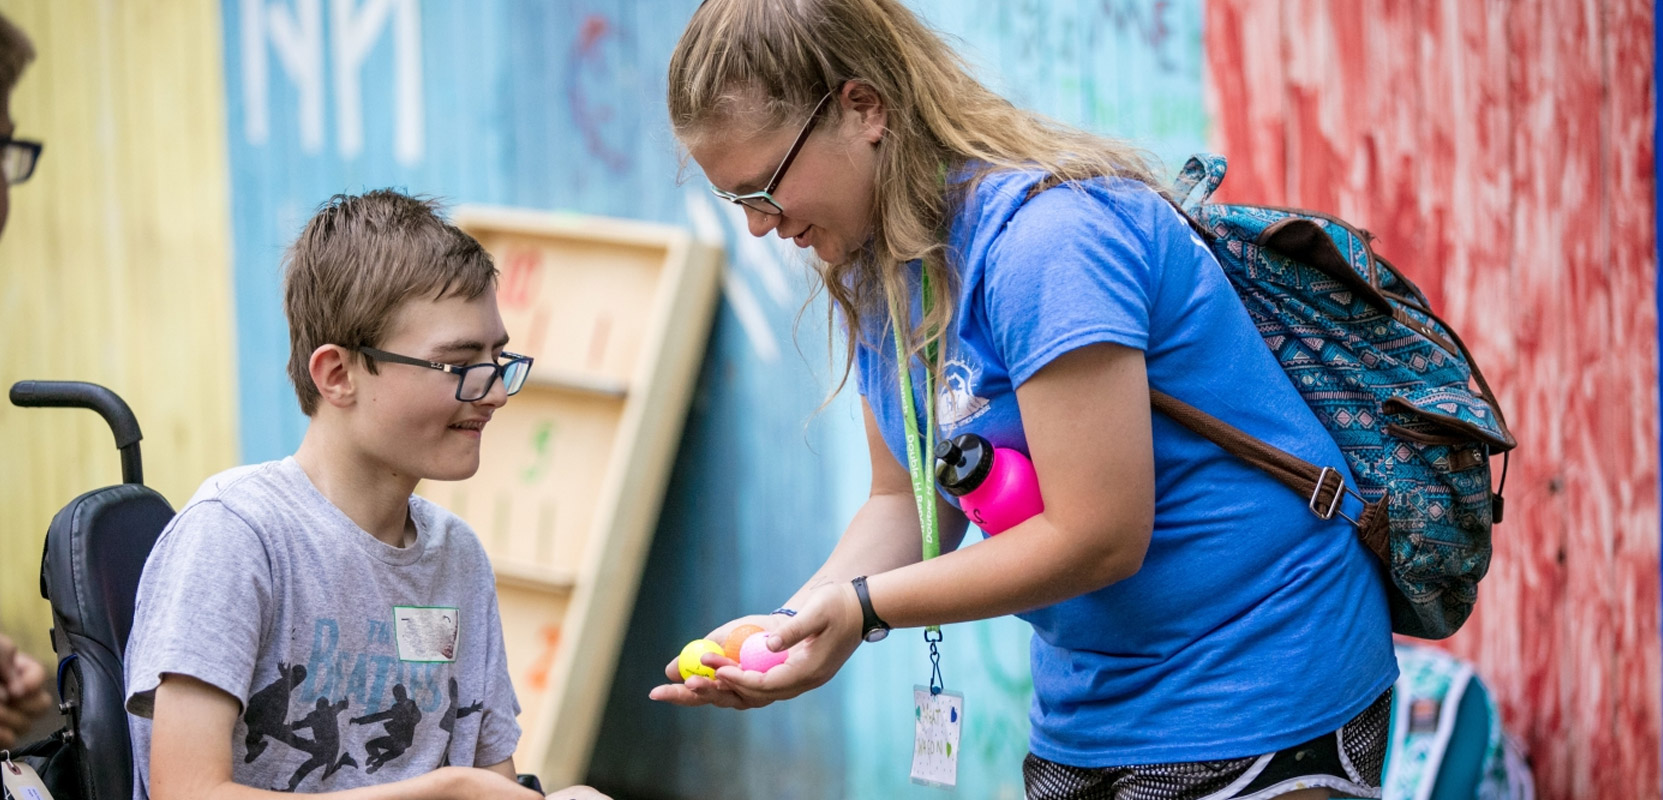 counselor helps camper in wheelchair select his mini golf ball